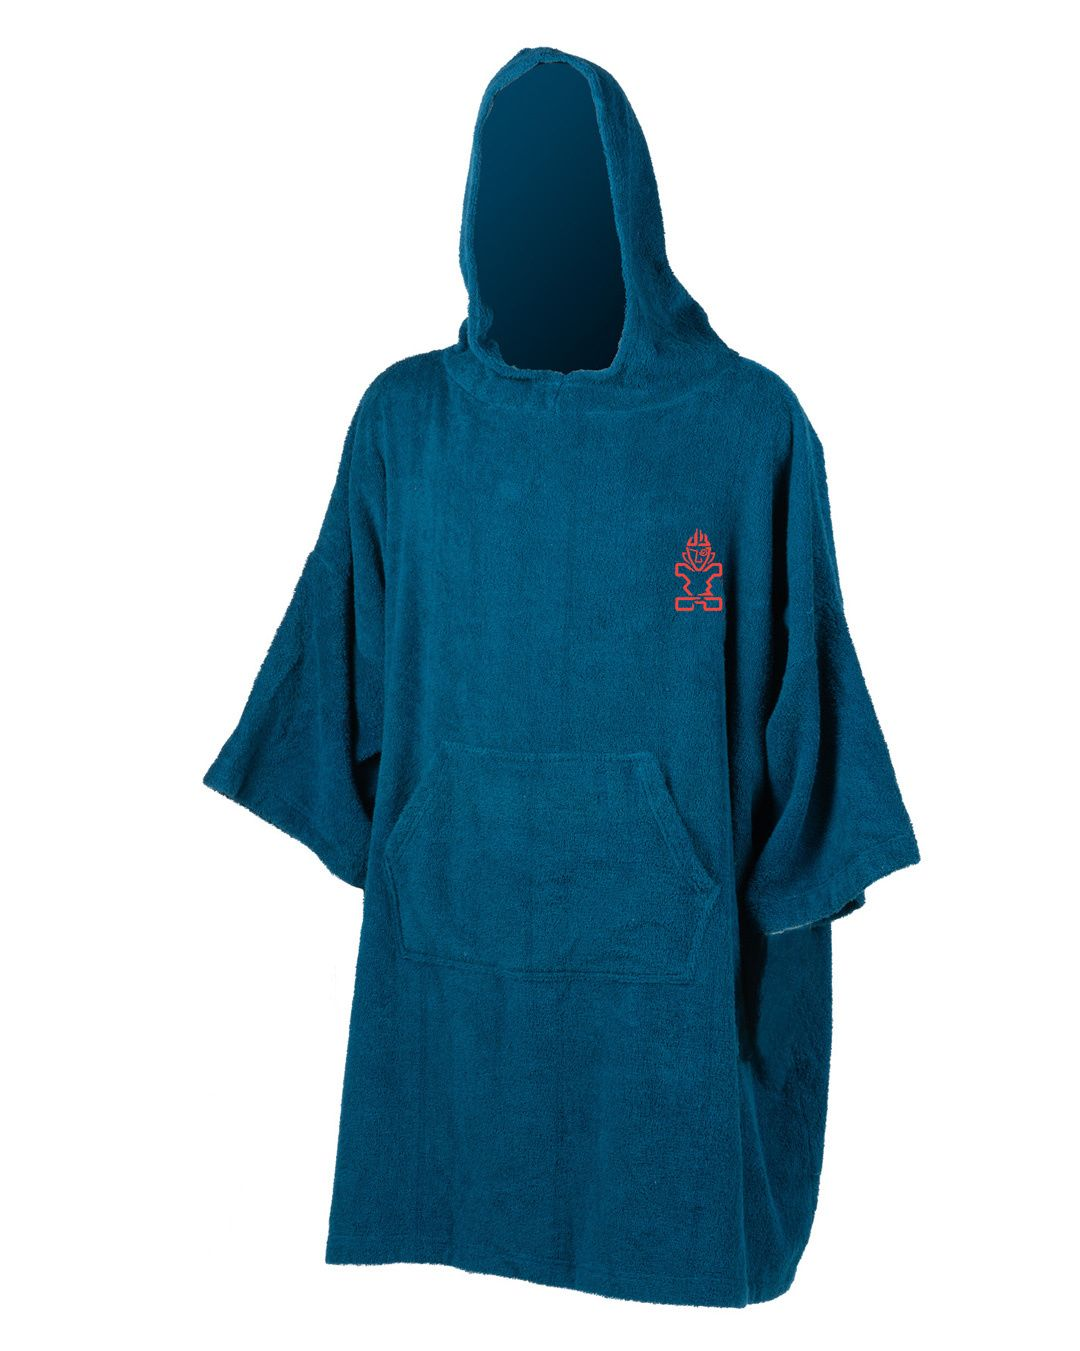 Starboard Surf Poncho